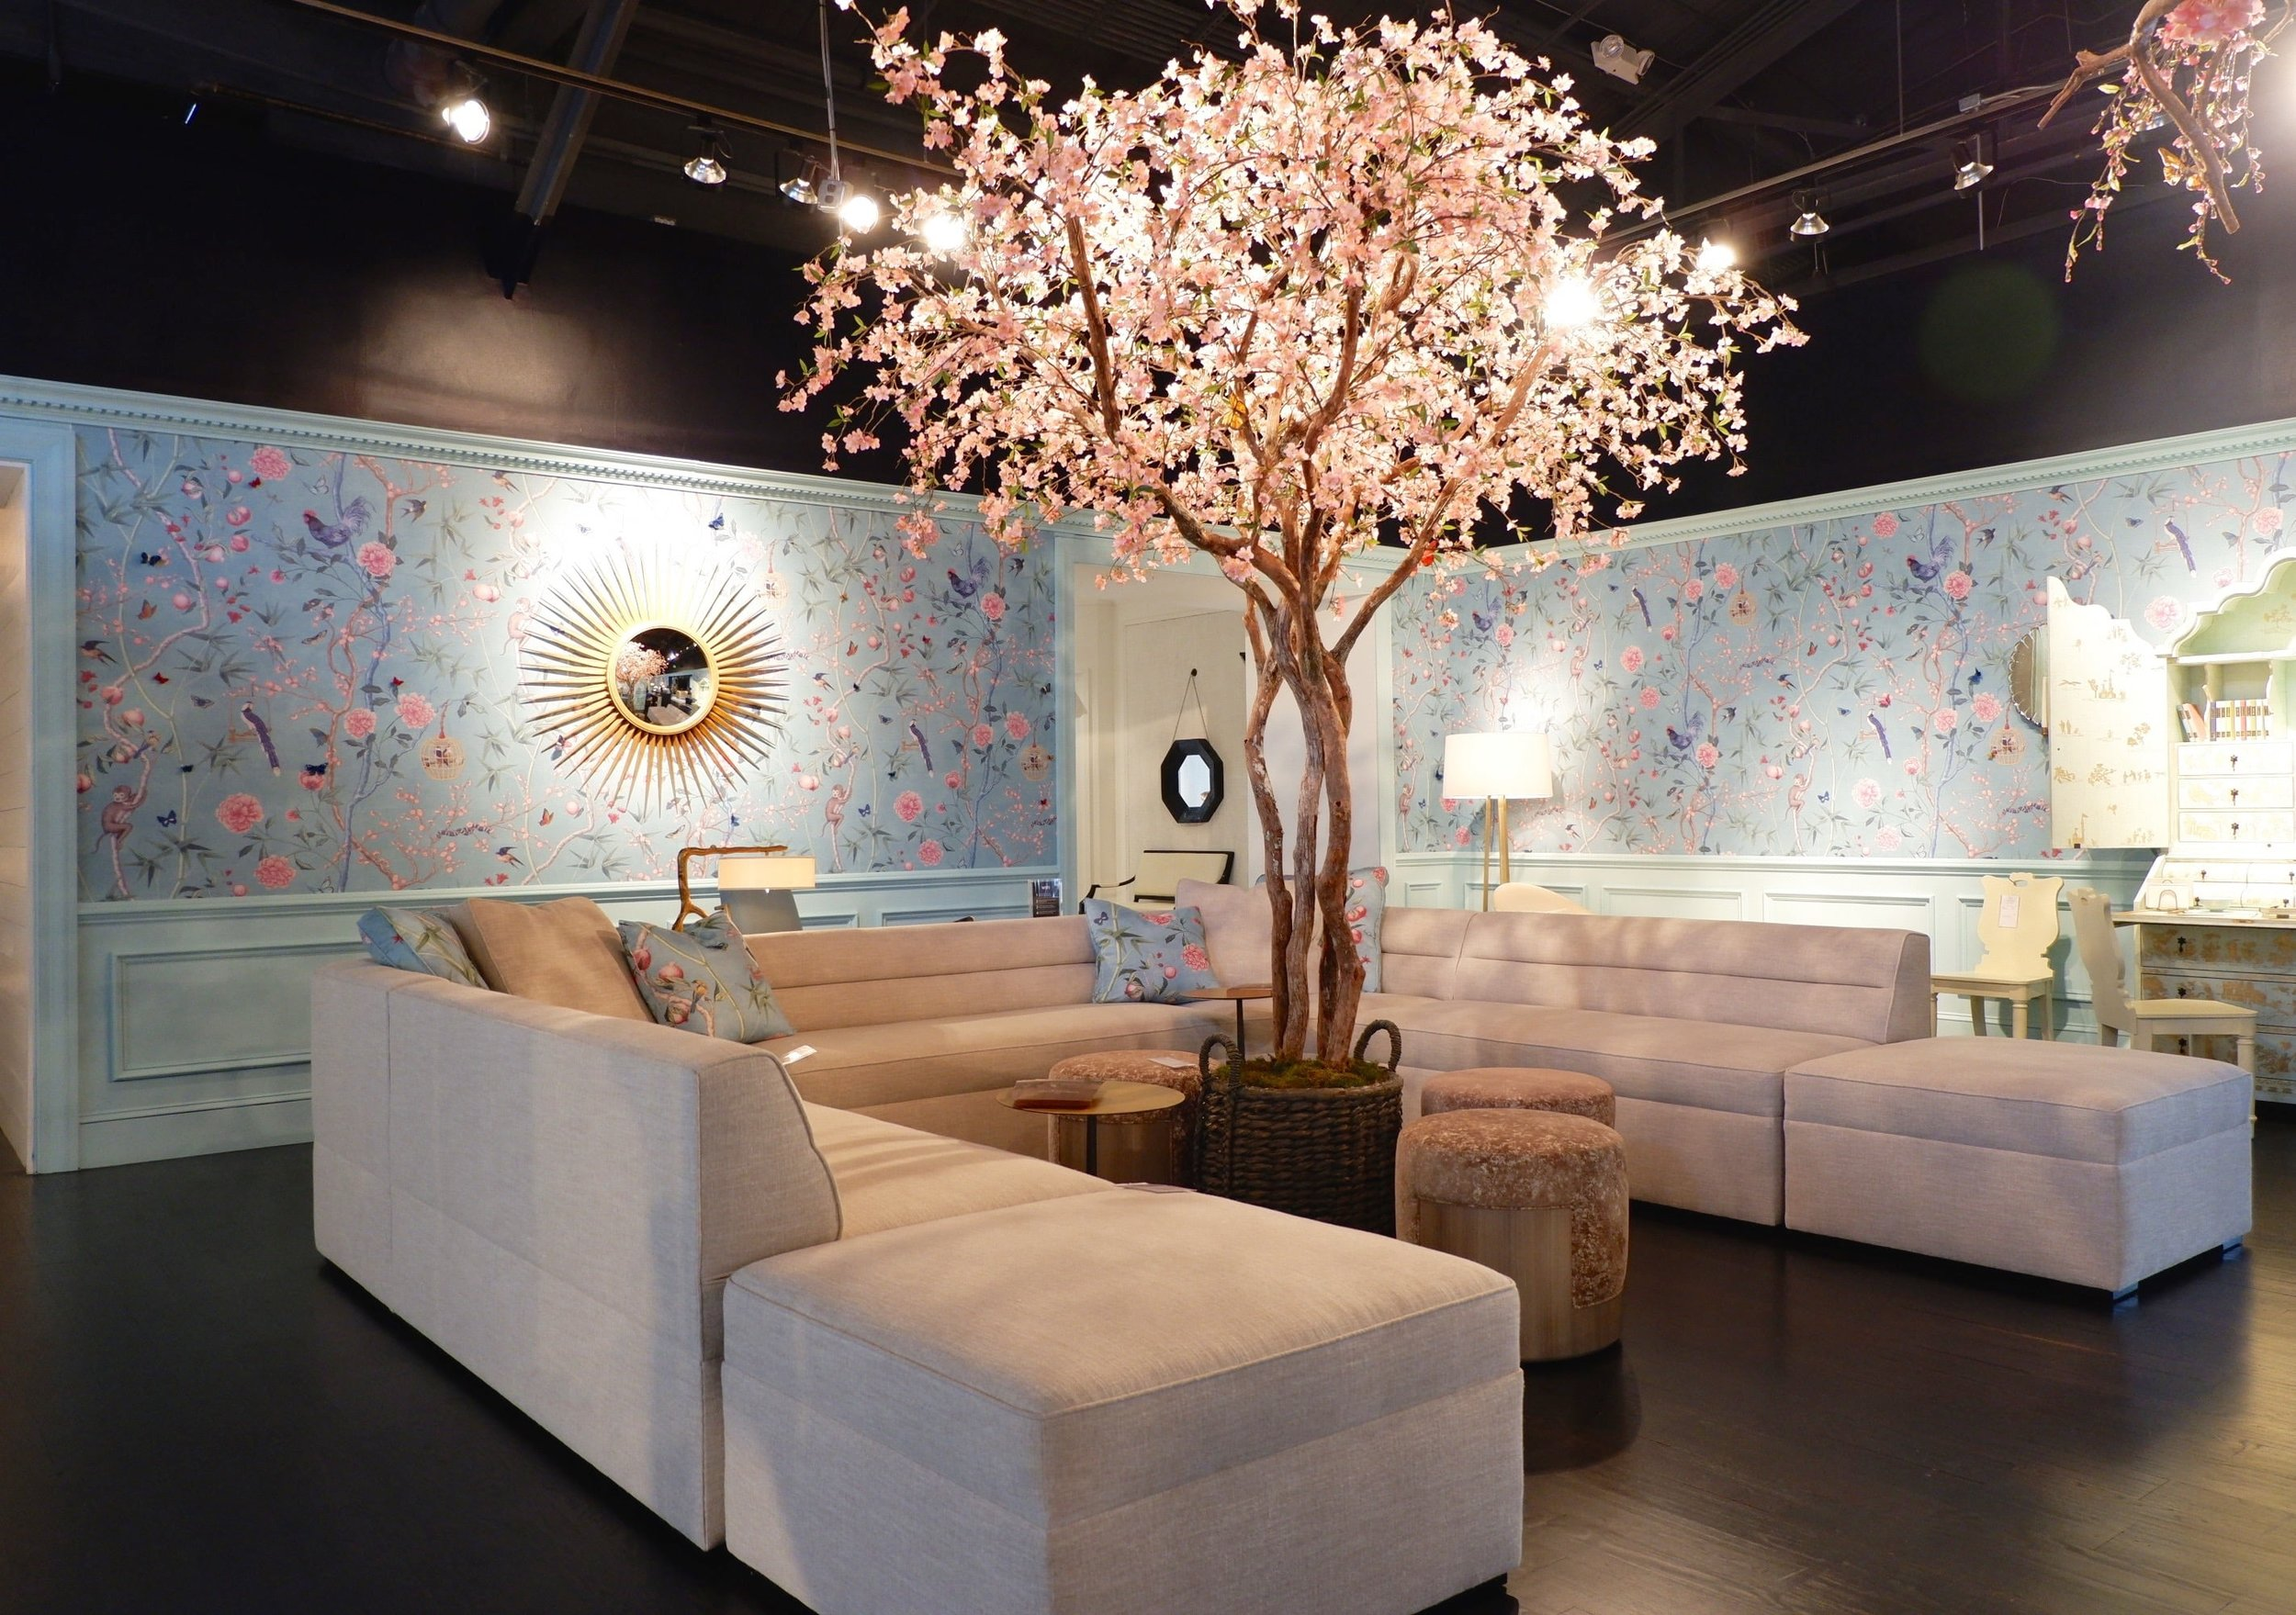 The glorious entry gallery at Baker Furniture featured this Kara Mann ginormous sectional with channel back upholstery.